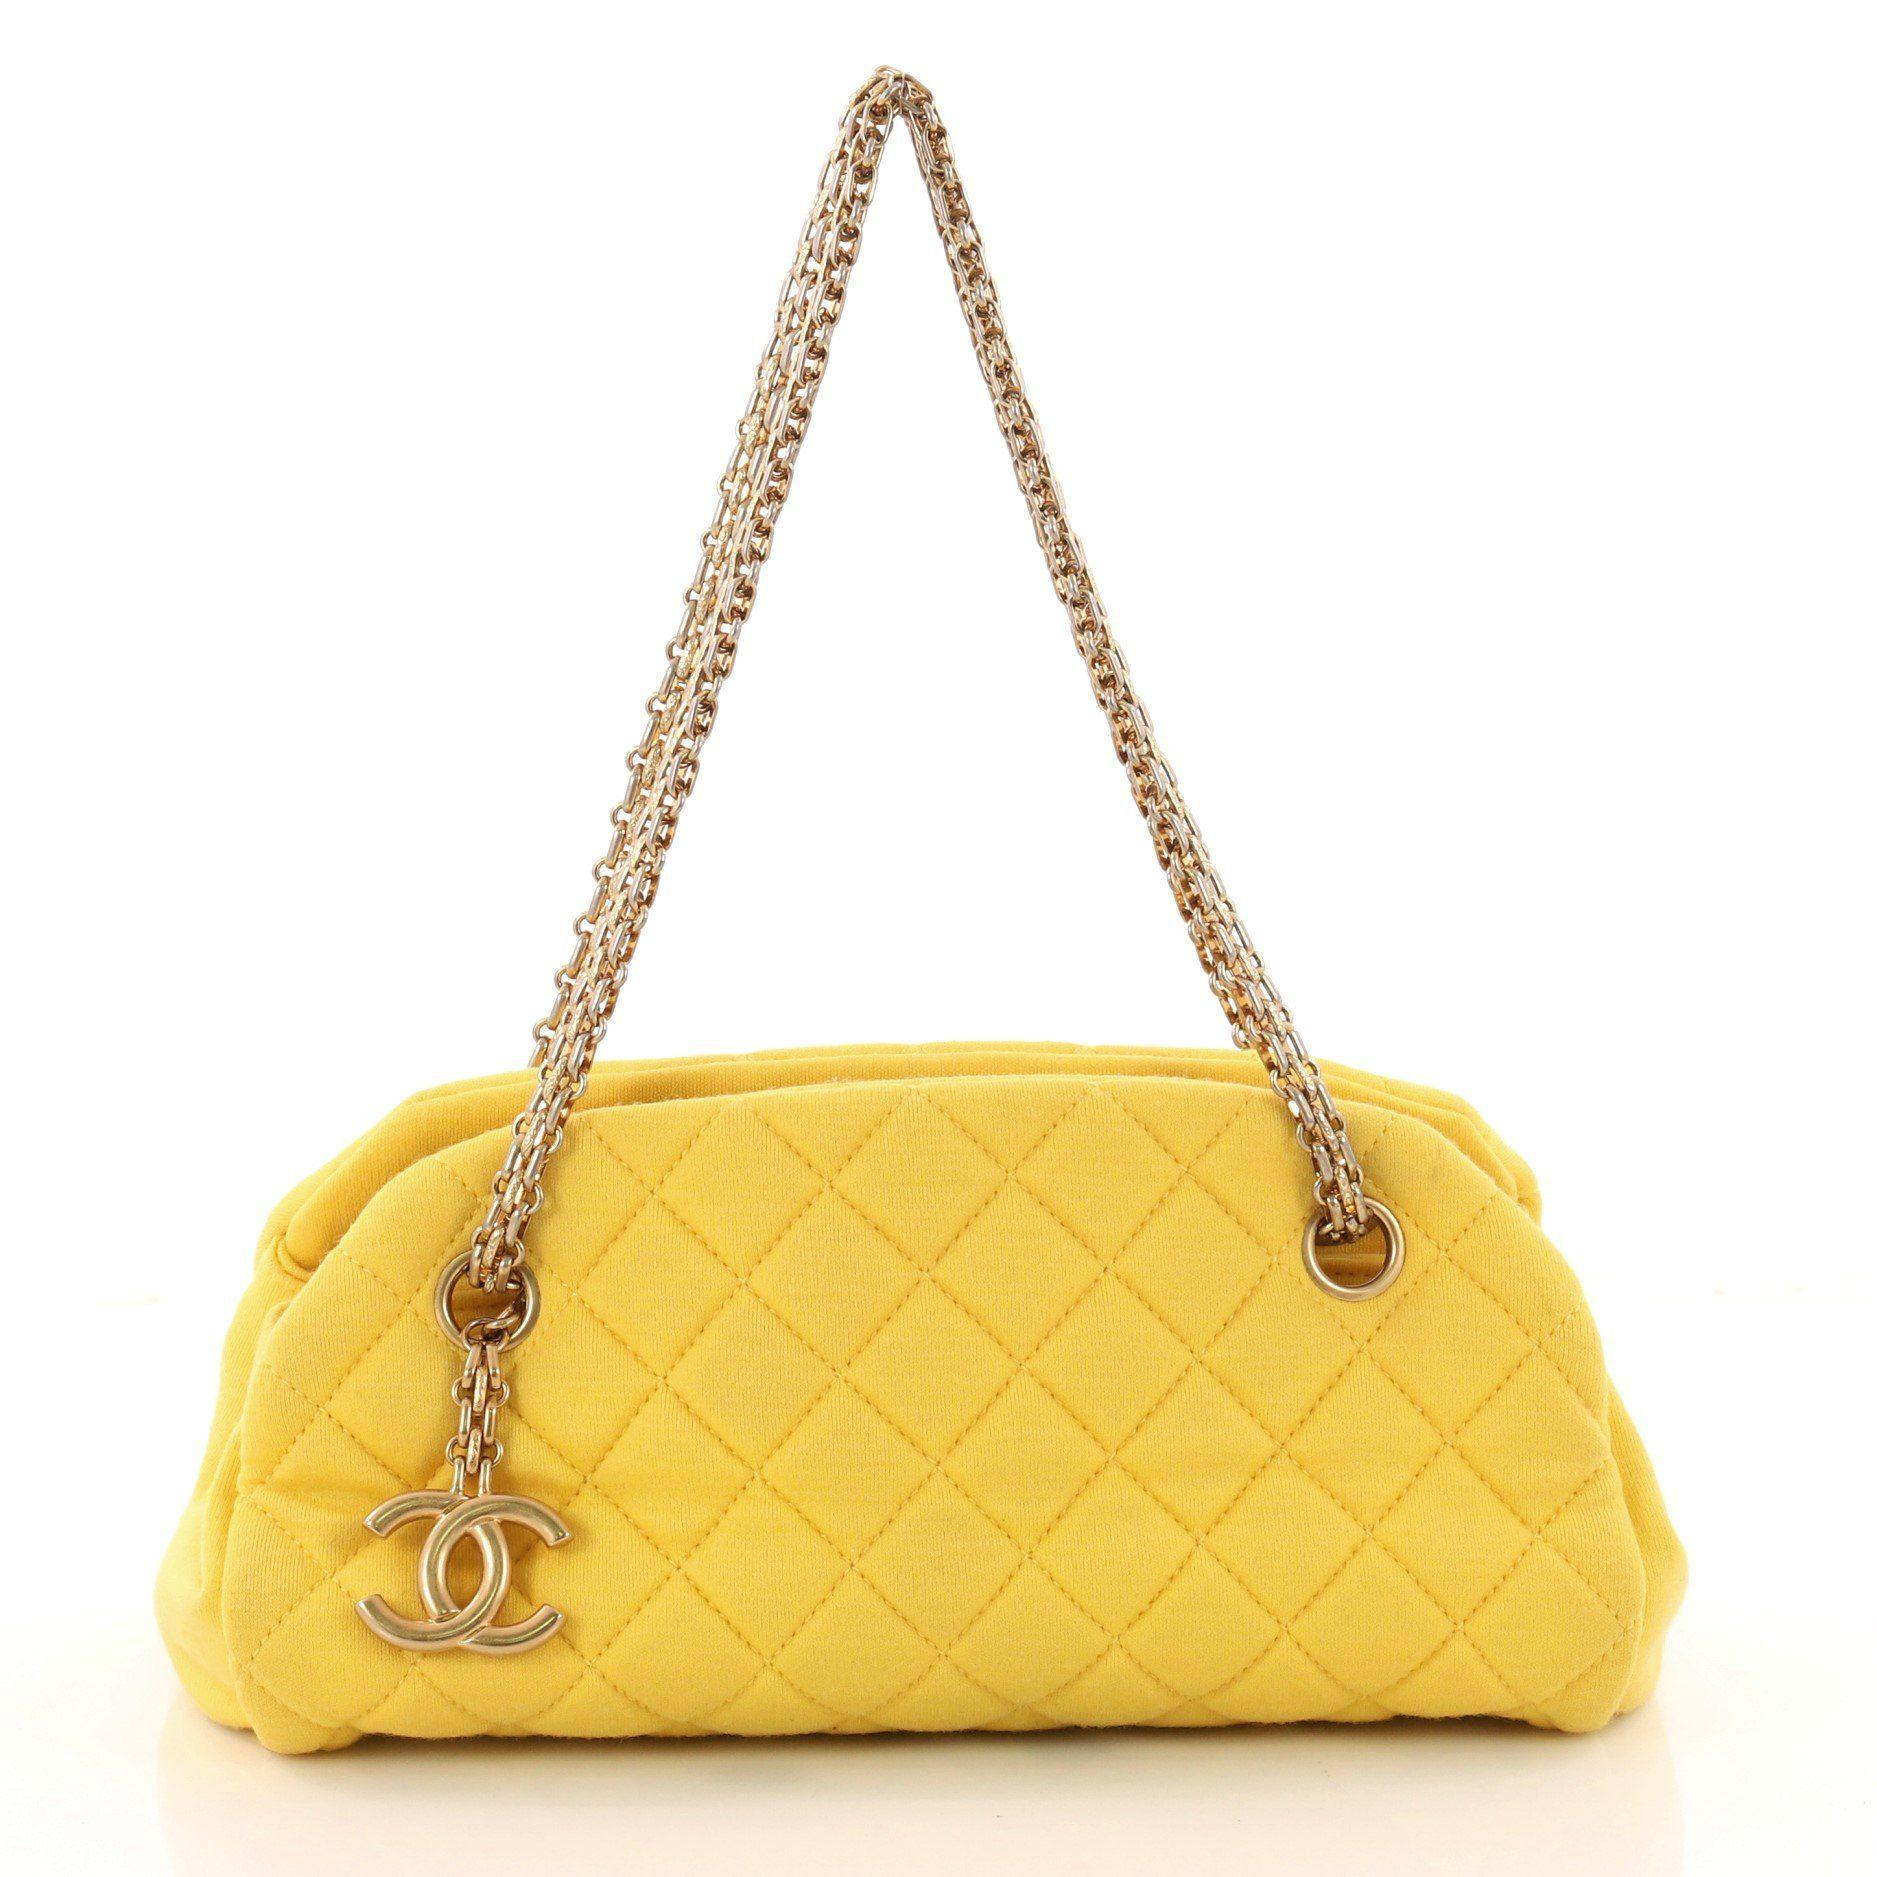 9f9c0245f5205d Lyst - Chanel Just Mademoiselle Handbag Quilted Jersey Small in Yellow